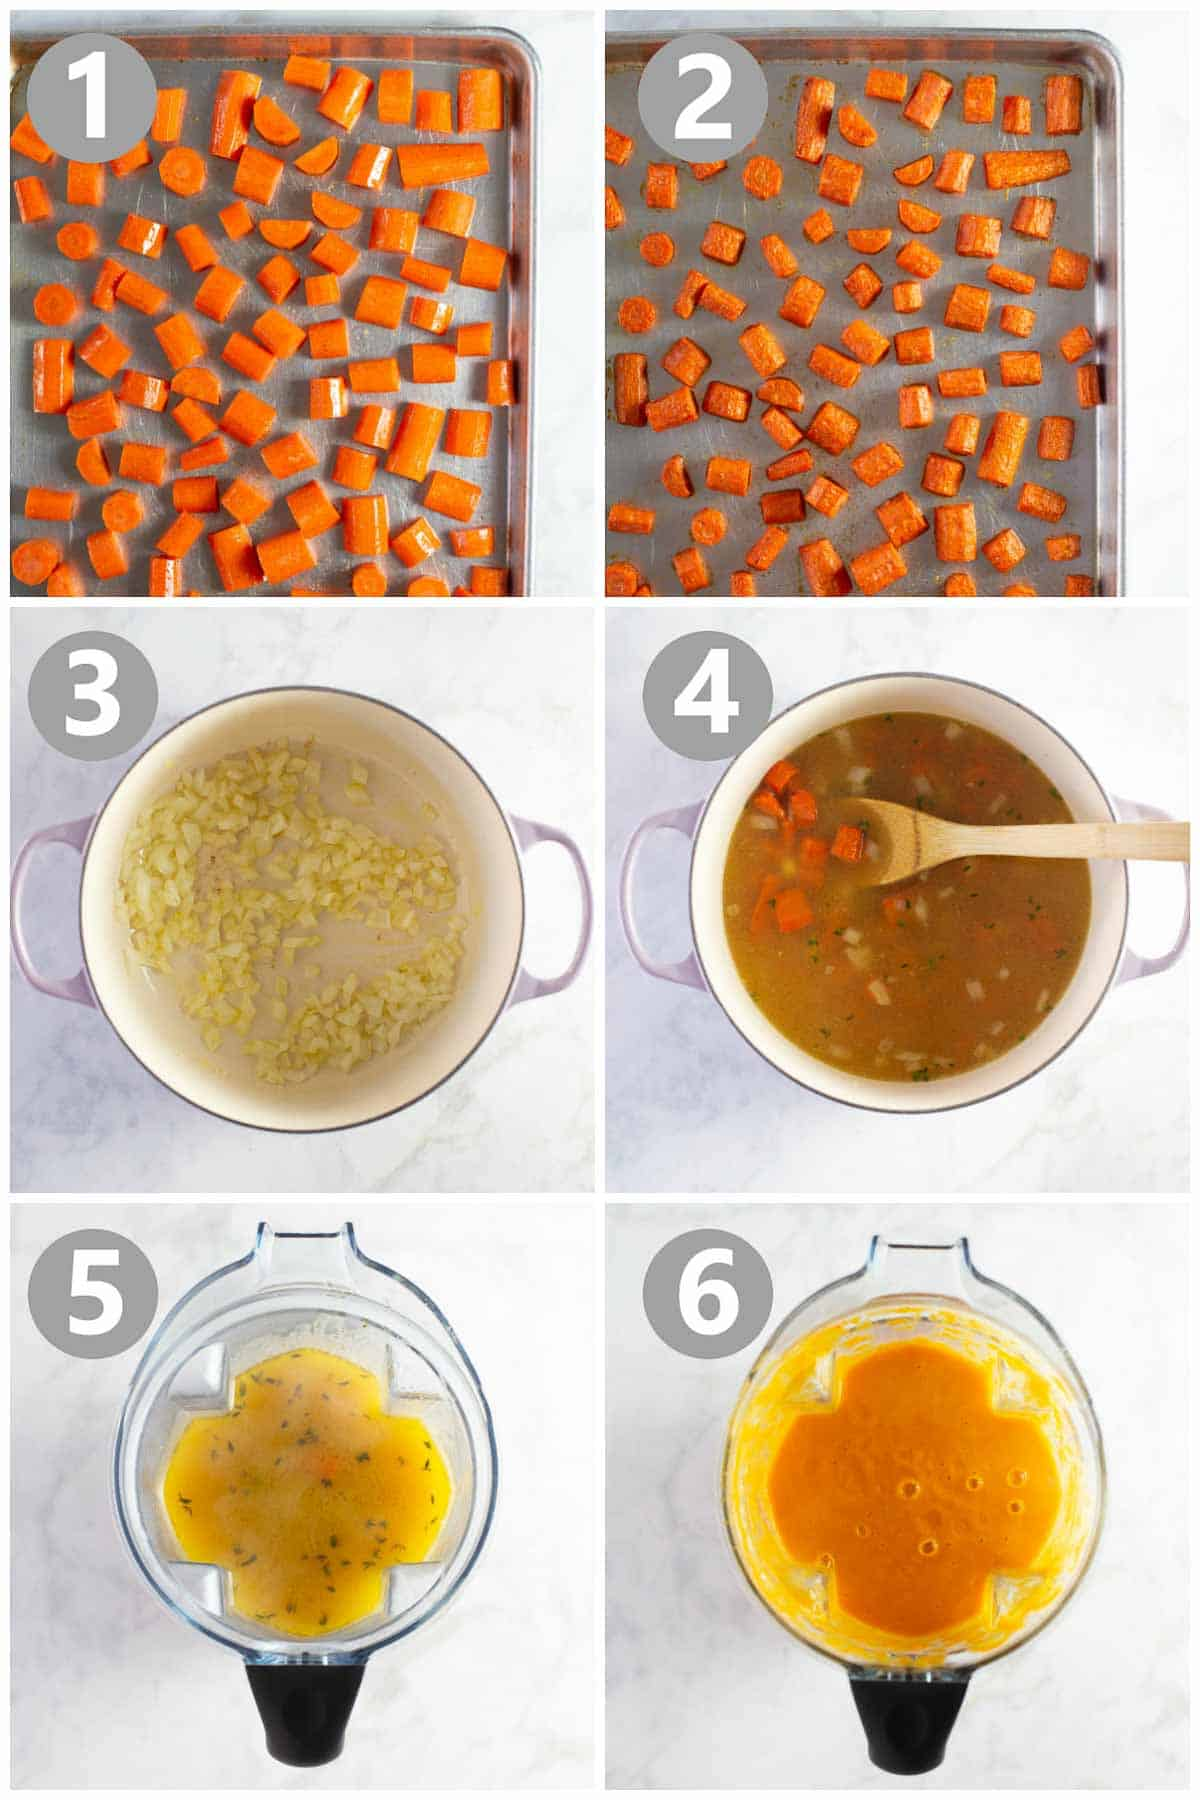 photo collage showing steps to make a carrot soup recipe